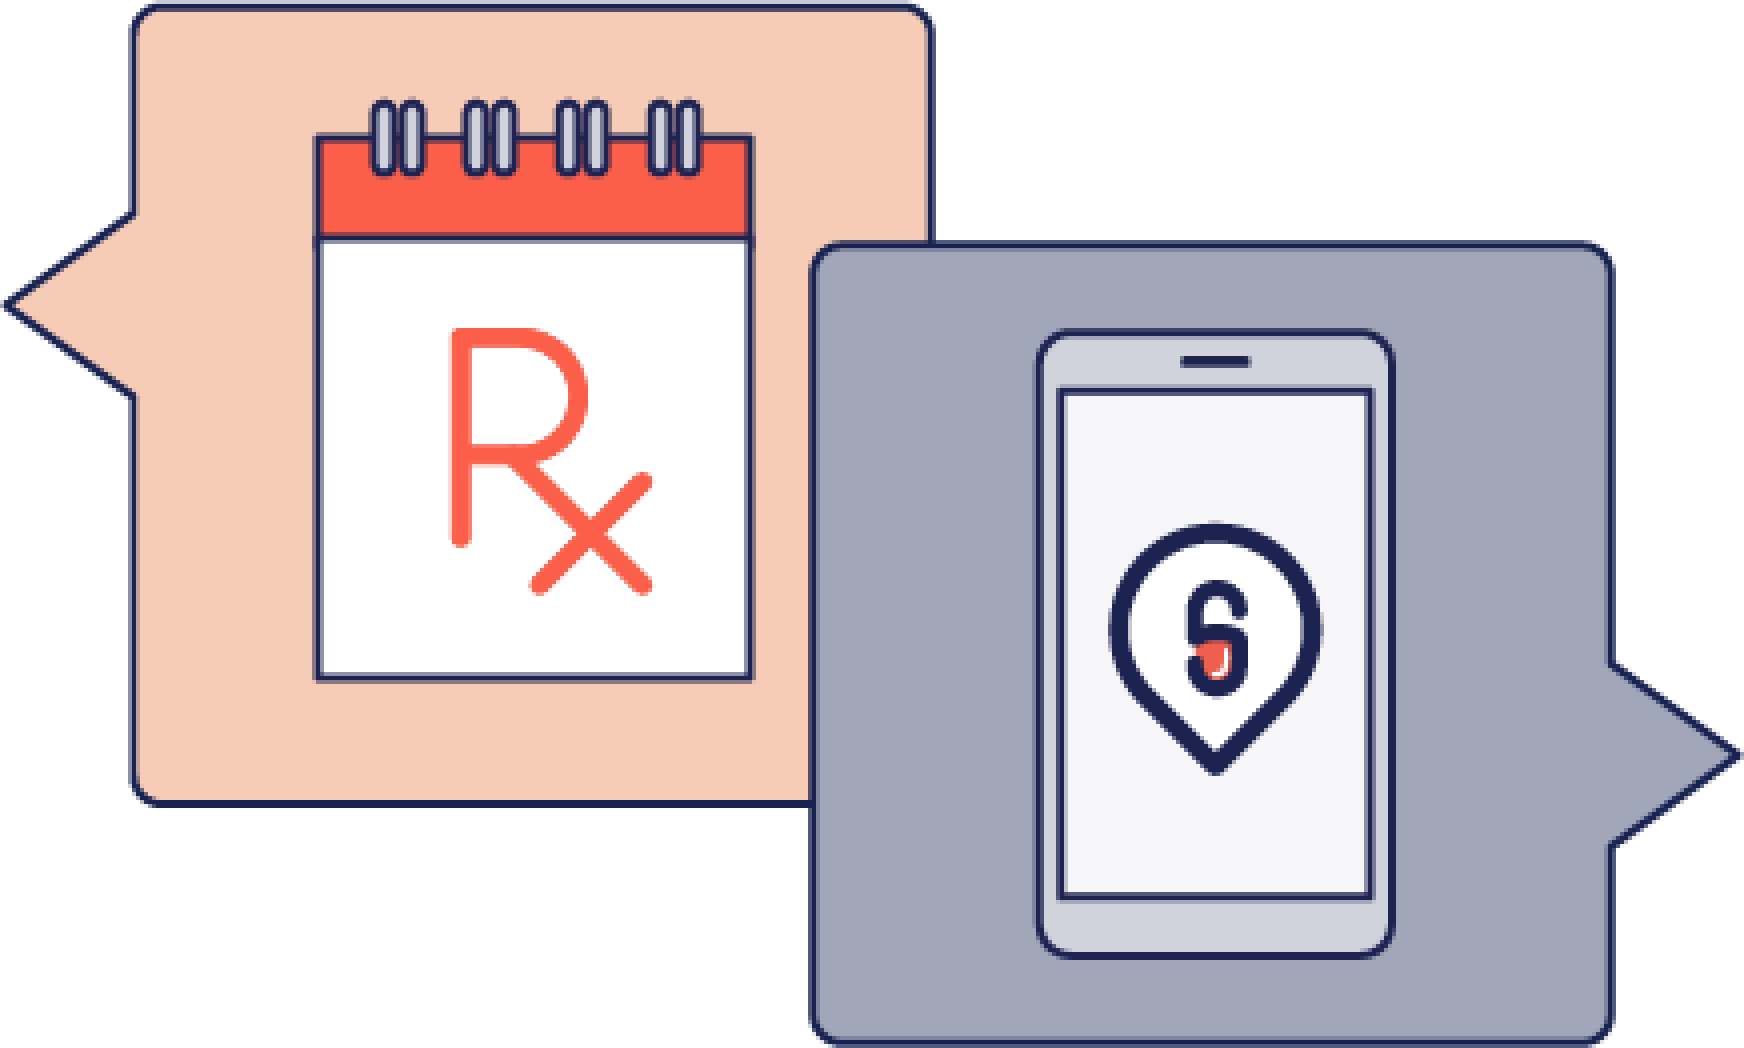 Illustration depicting a mobile phone and a pharmacy communicating through ScriptHero